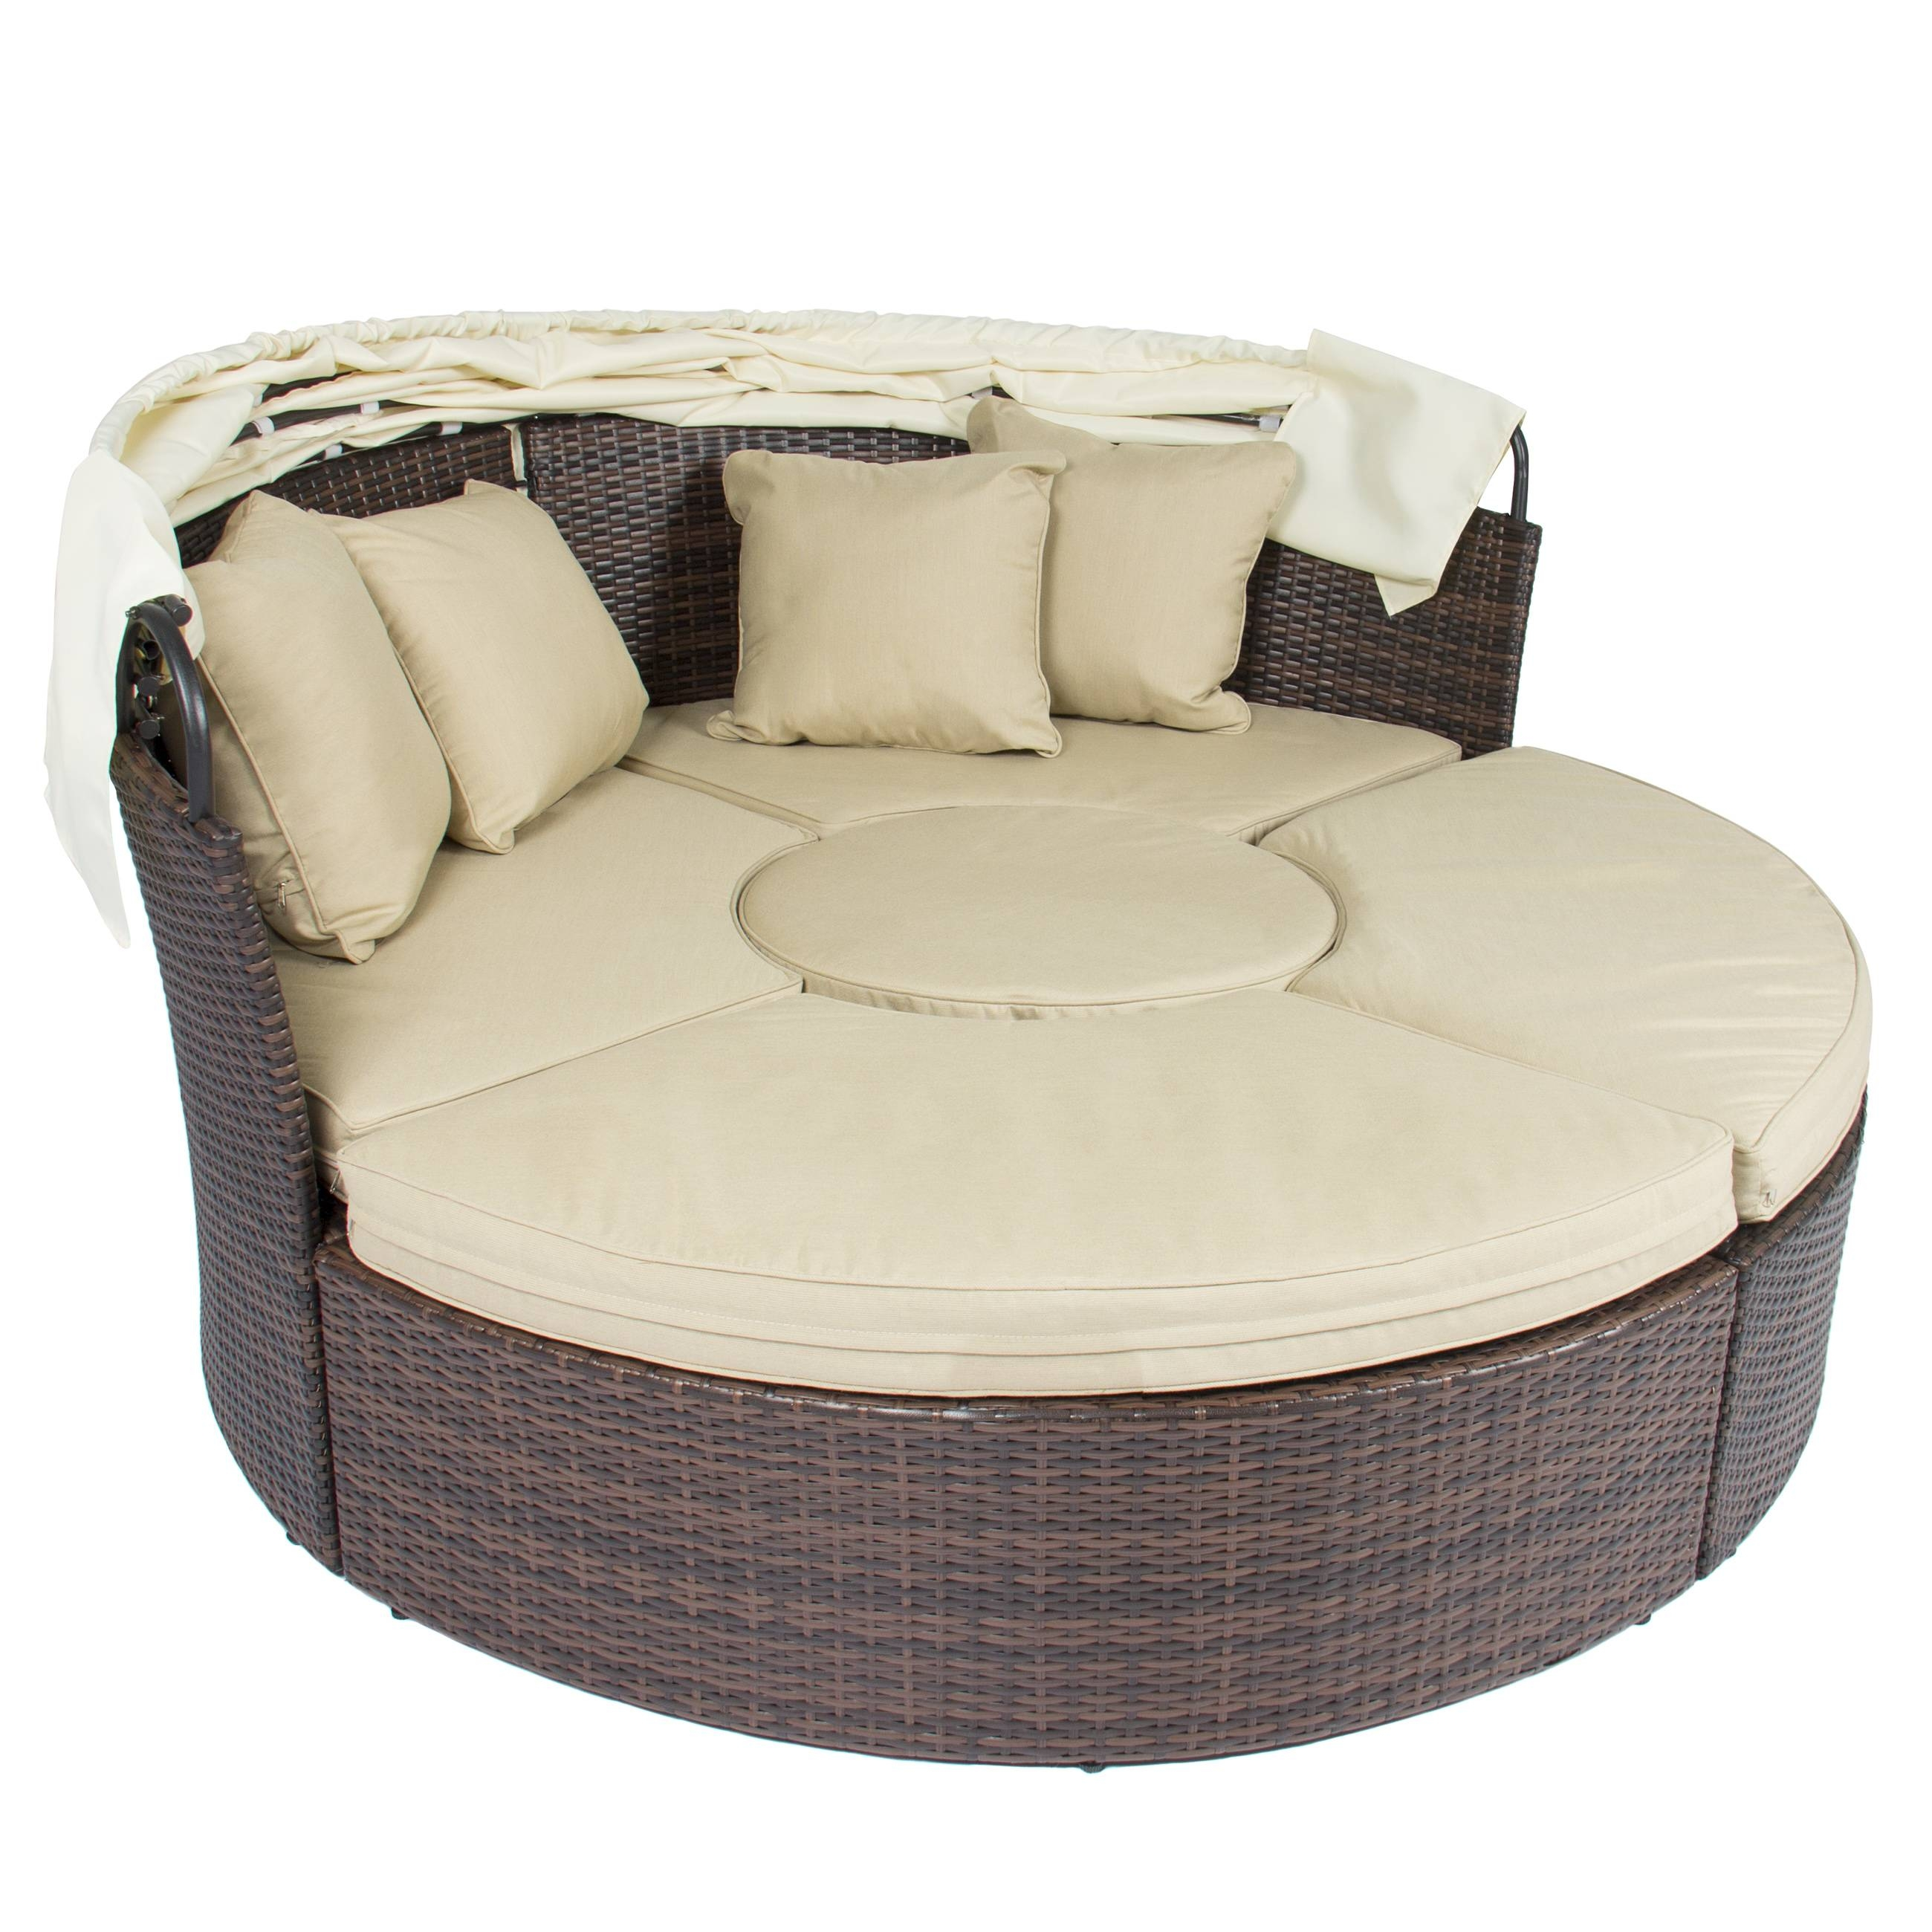 Outdoor Patio Sofa Furniture Round Retractable Canopy Daybed Brown throughout Circle Sofa Chairs (Image 18 of 30)